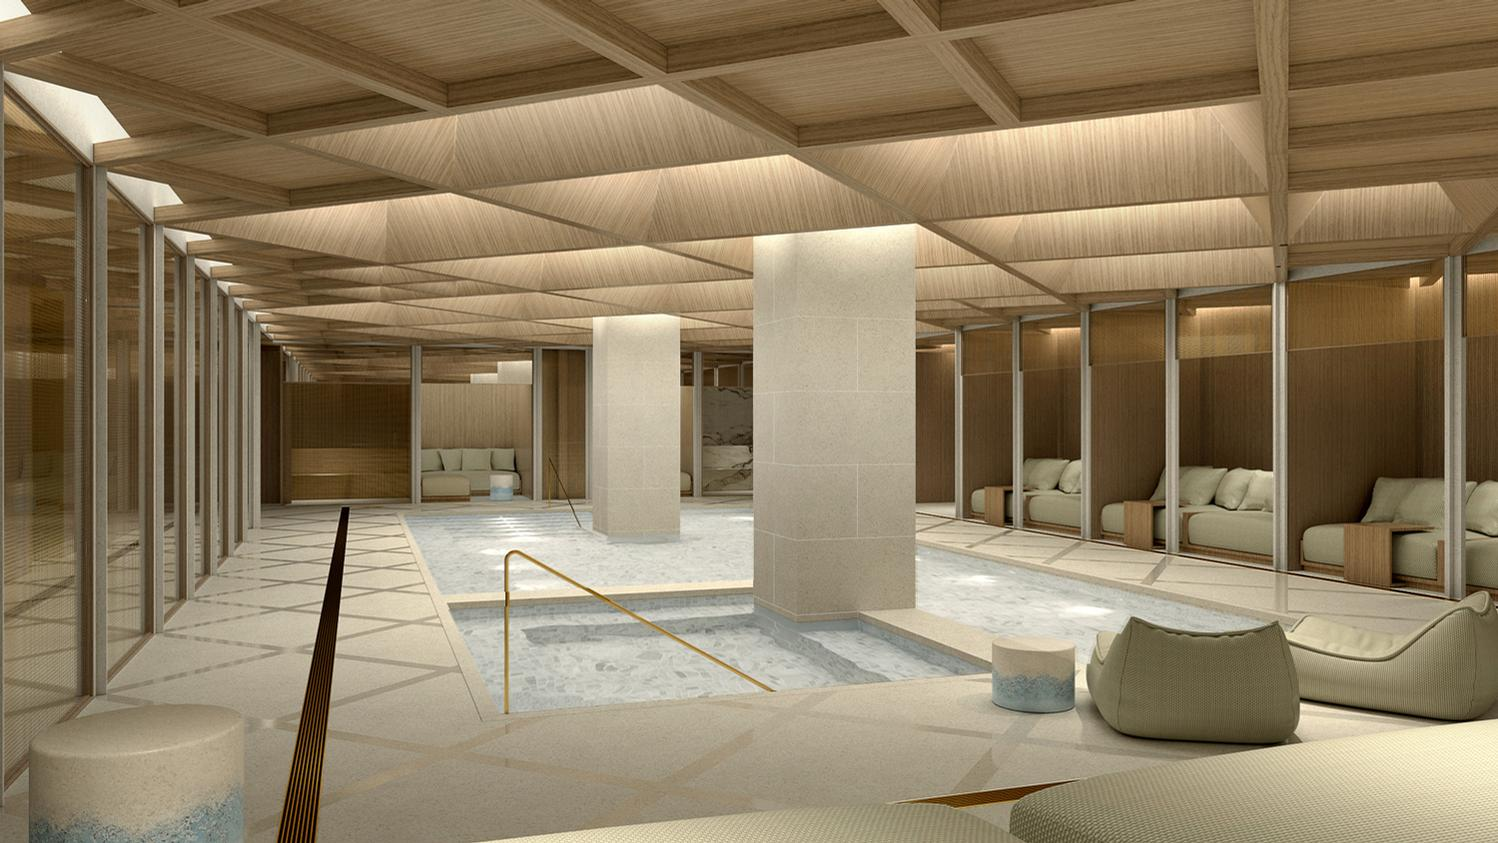 The Londoner will include feature a subterranean spa